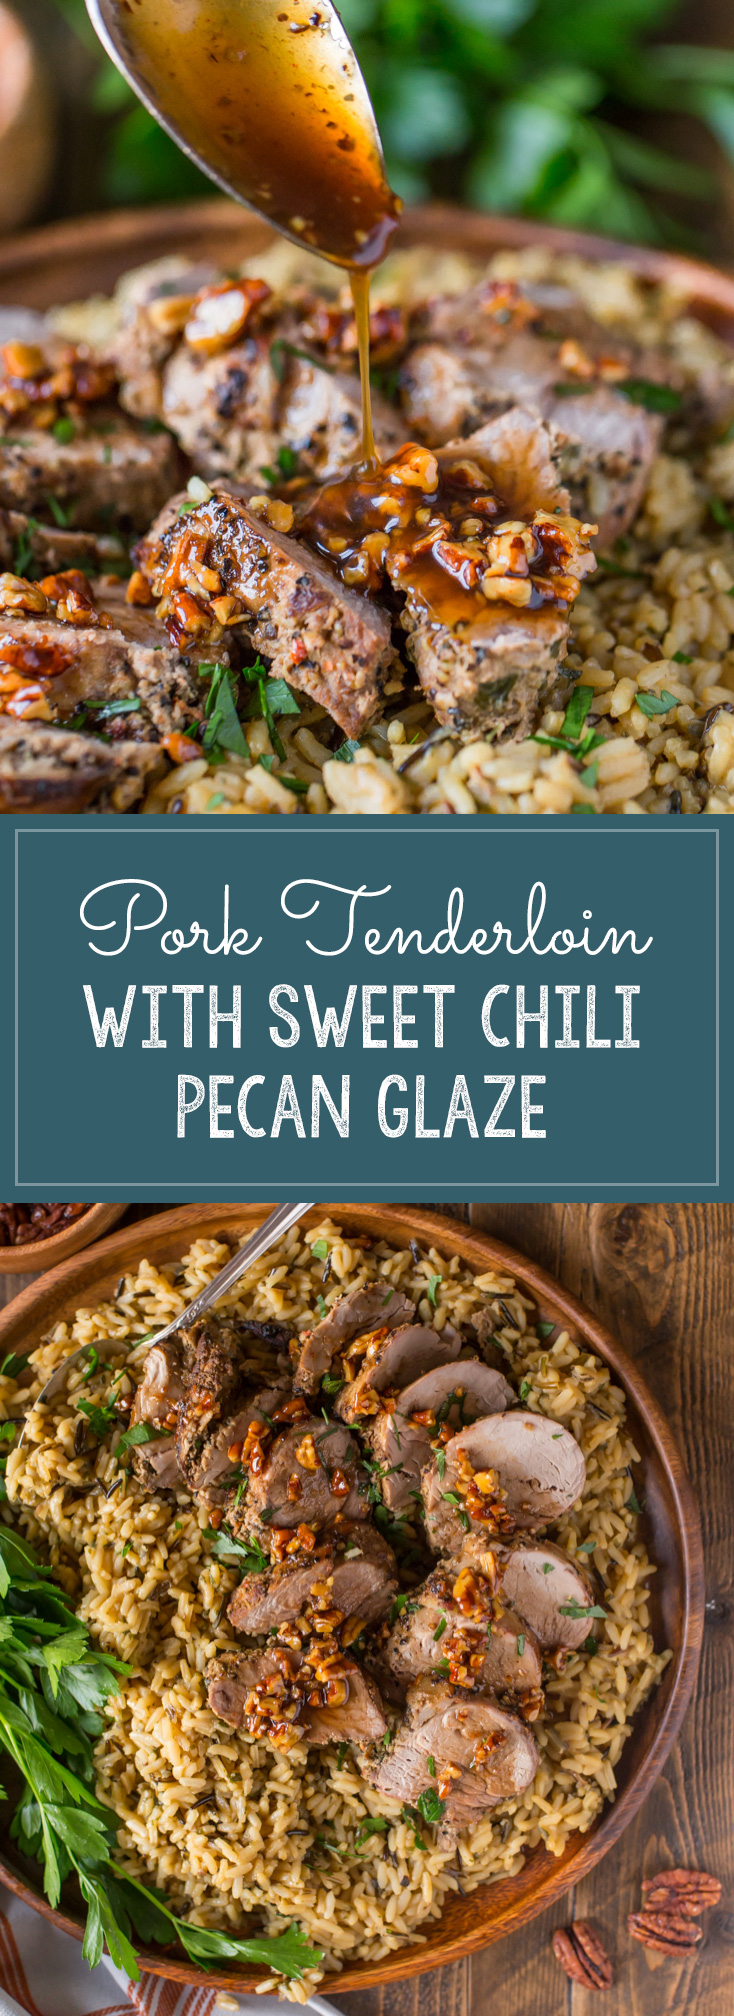 Peppery pork tenderloin is perfectly complimented by a sweet and slightly spicy buttery pecan glaze. My husband and I are crazy about this one!